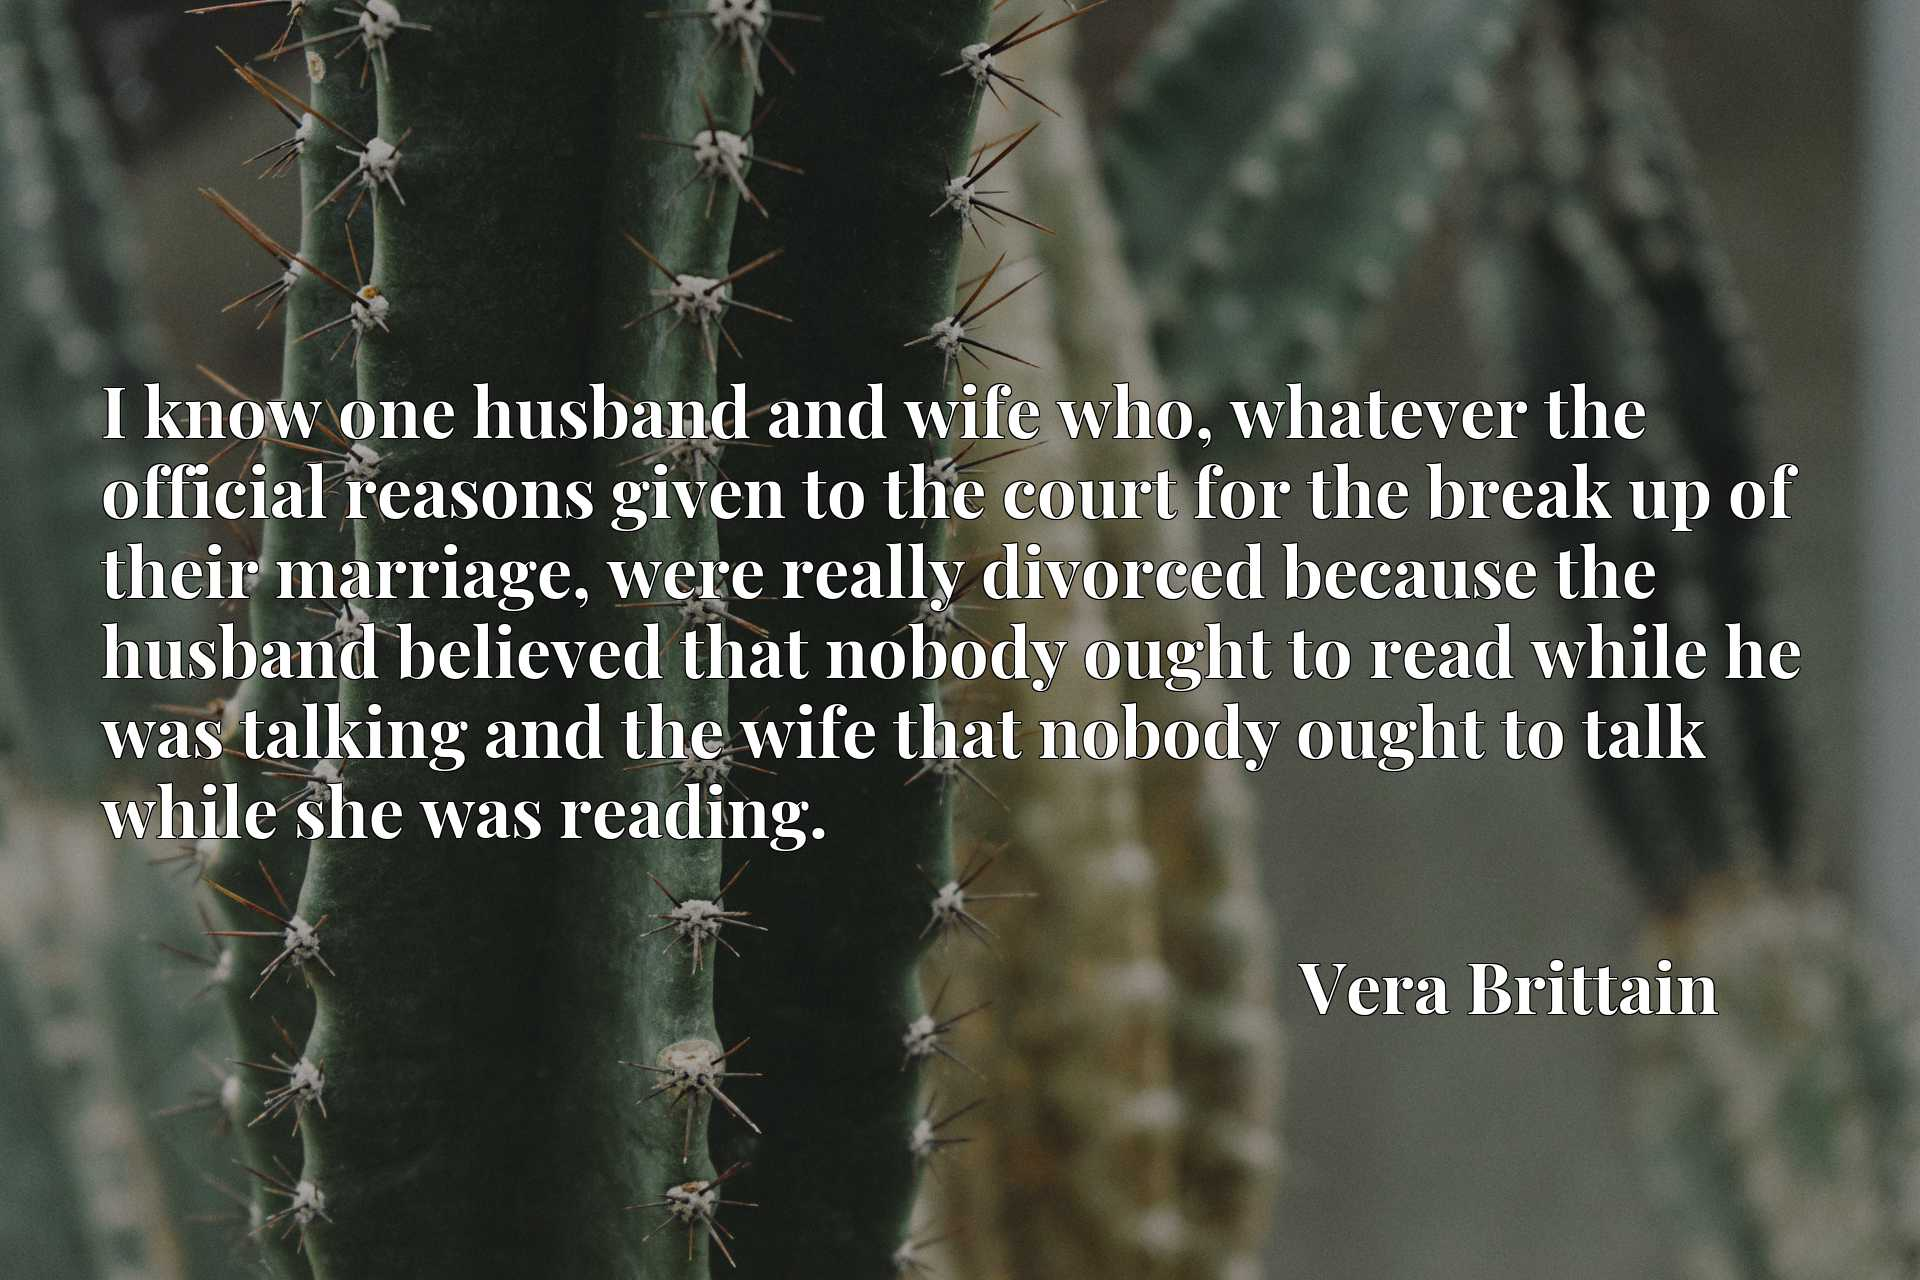 I know one husband and wife who, whatever the official reasons given to the court for the break up of their marriage, were really divorced because the husband believed that nobody ought to read while he was talking and the wife that nobody ought to talk while she was reading.